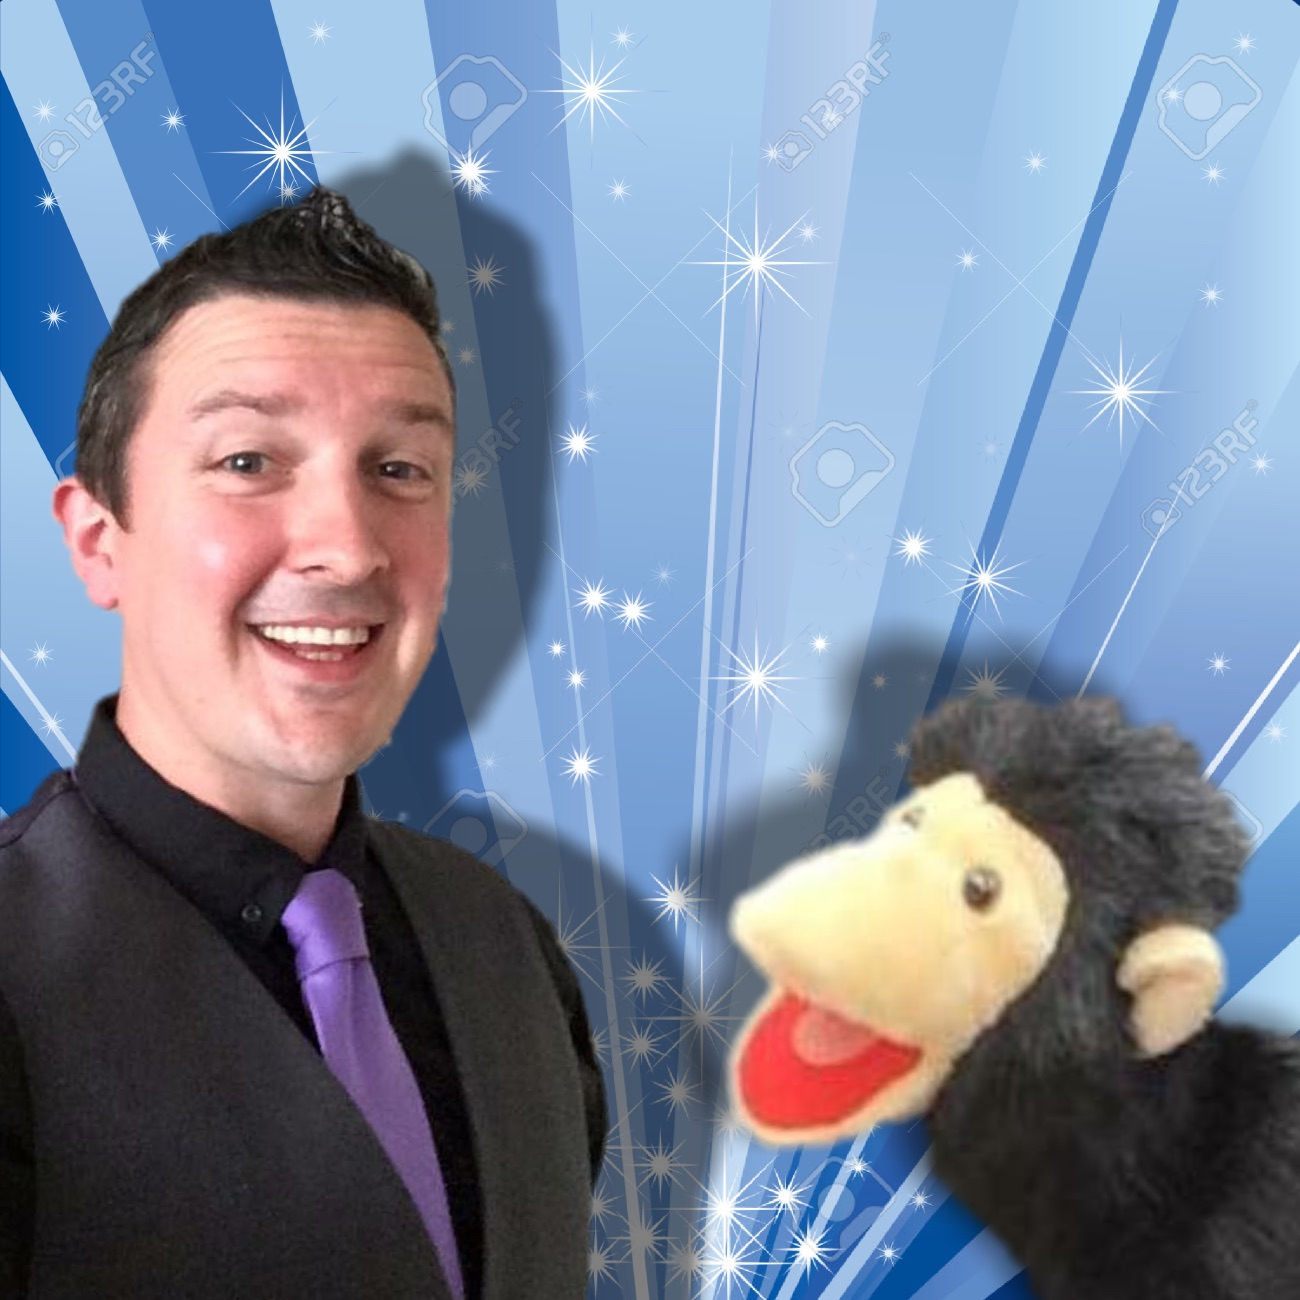 Childrens Entertainer, Magician, Ventriloquist #4029 Image